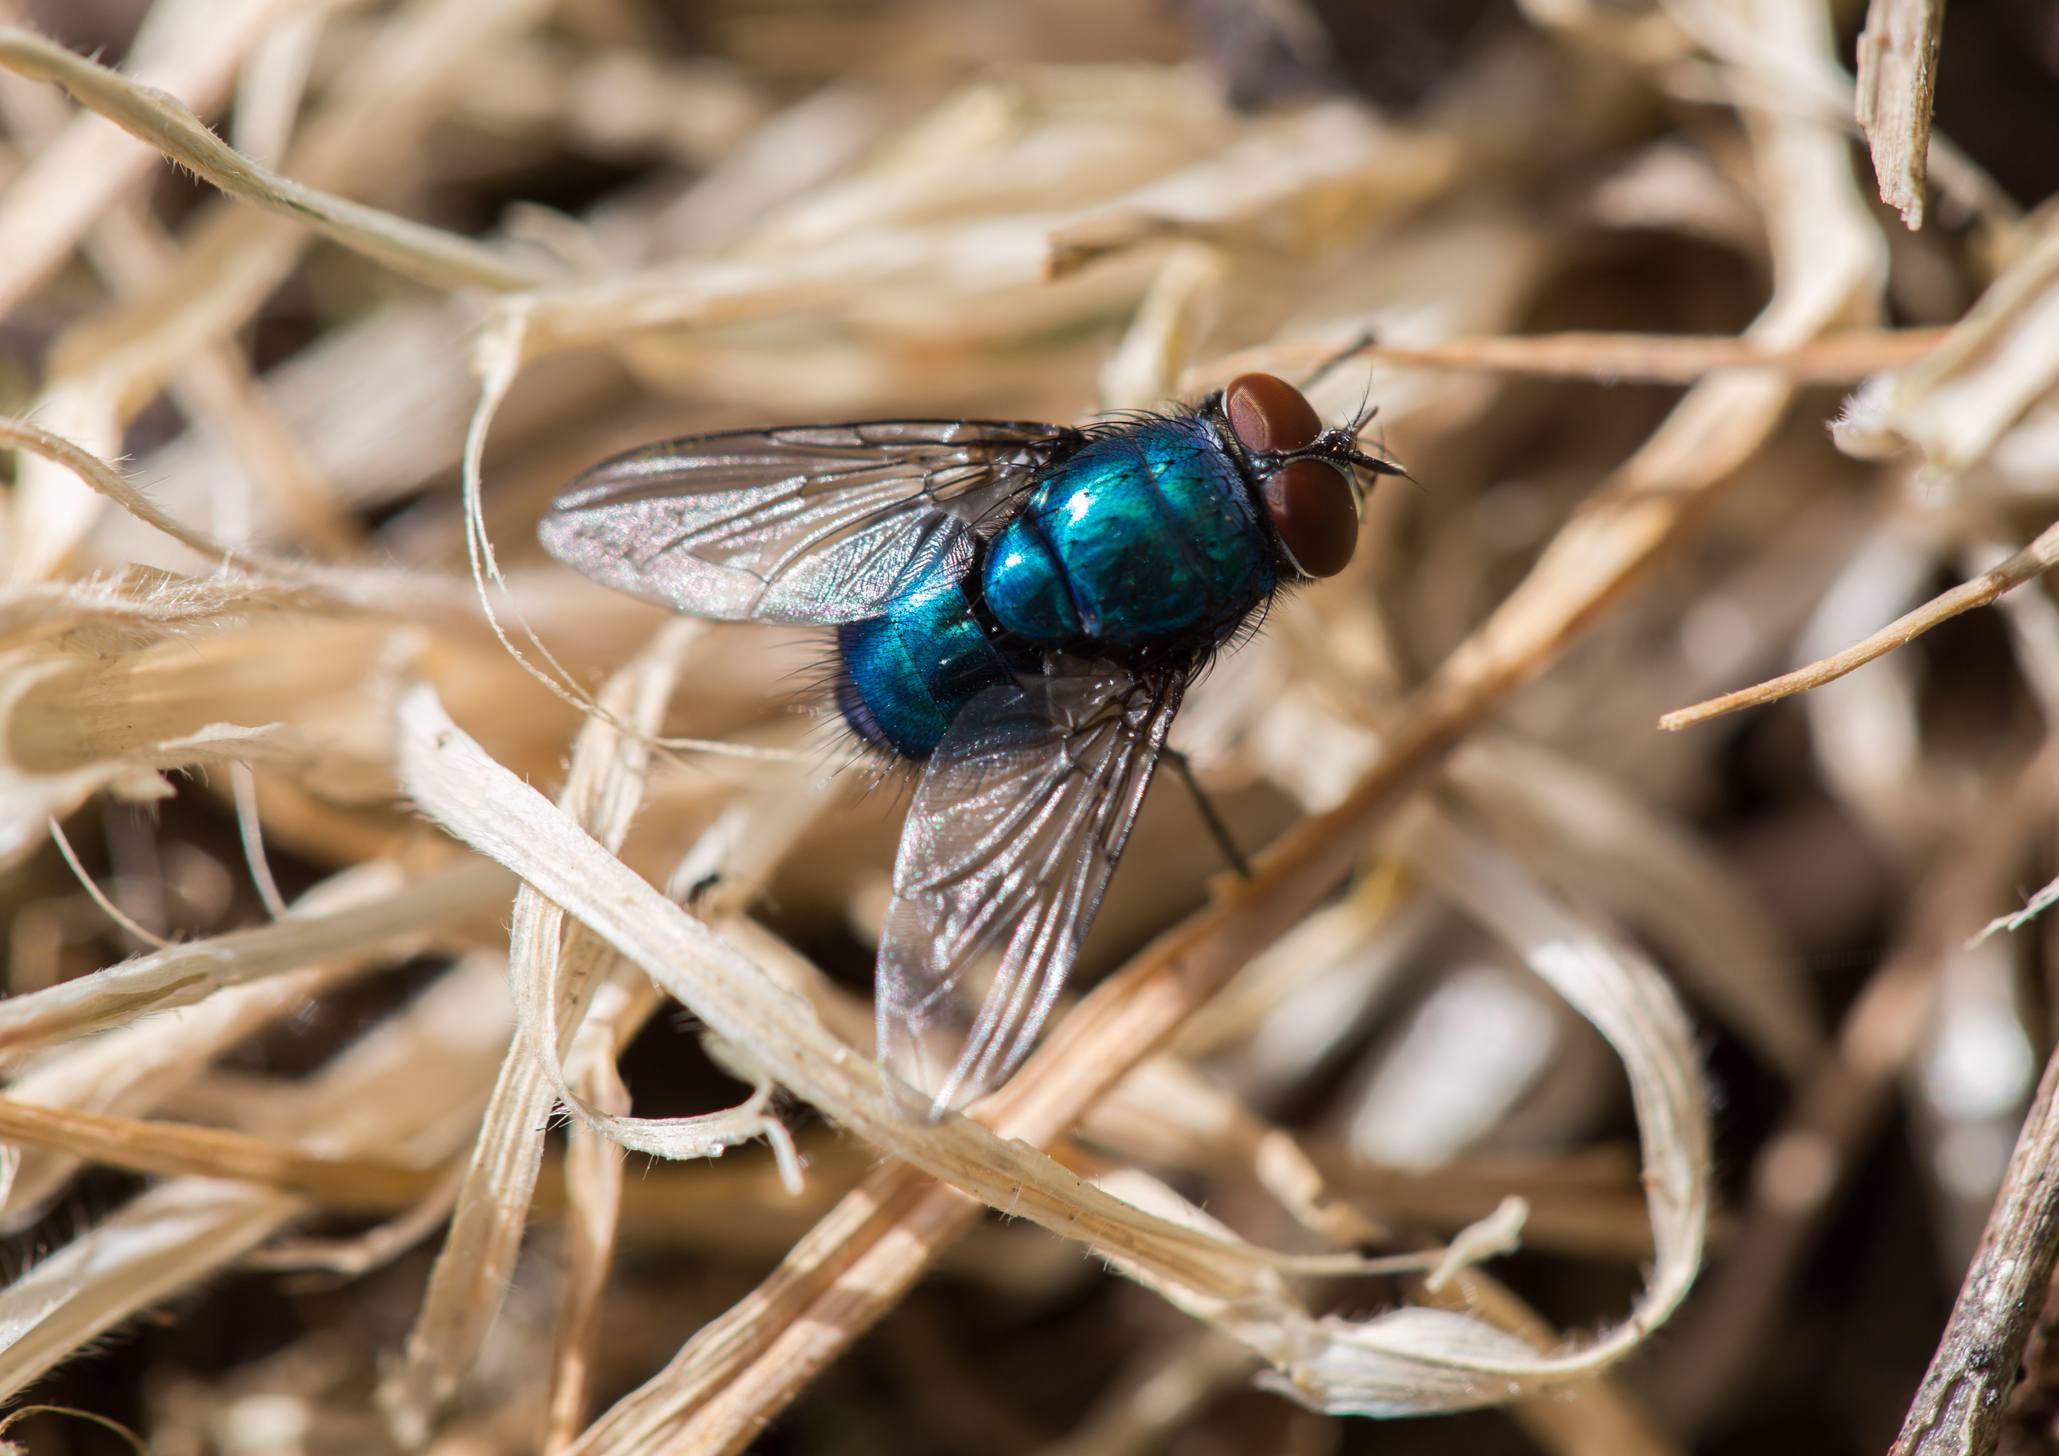 Blowfly strikes will be likely when the weather breaks